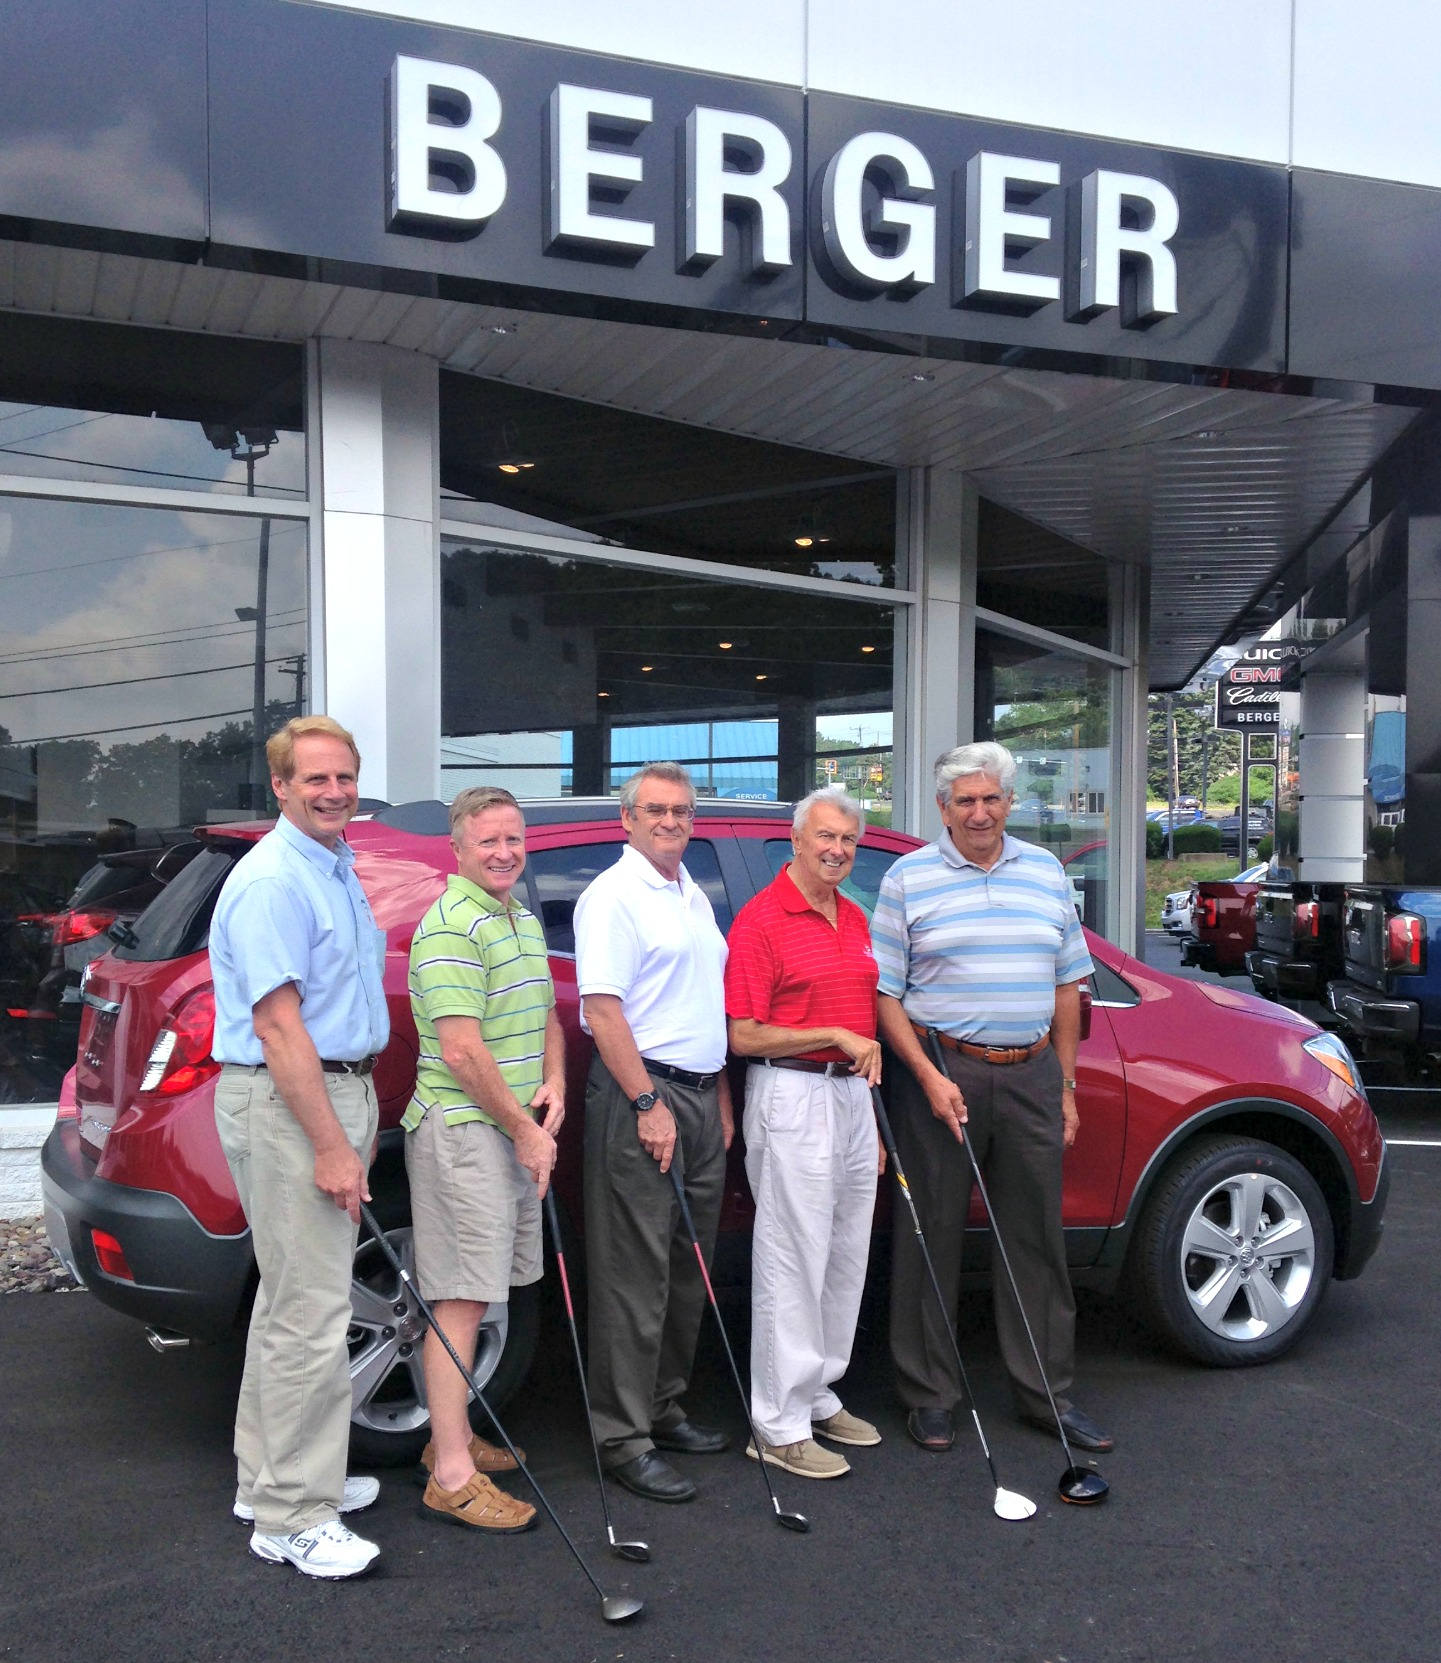 Berger Family Dealerships Sponsors Hole in One Contest for Annual Golf Outing